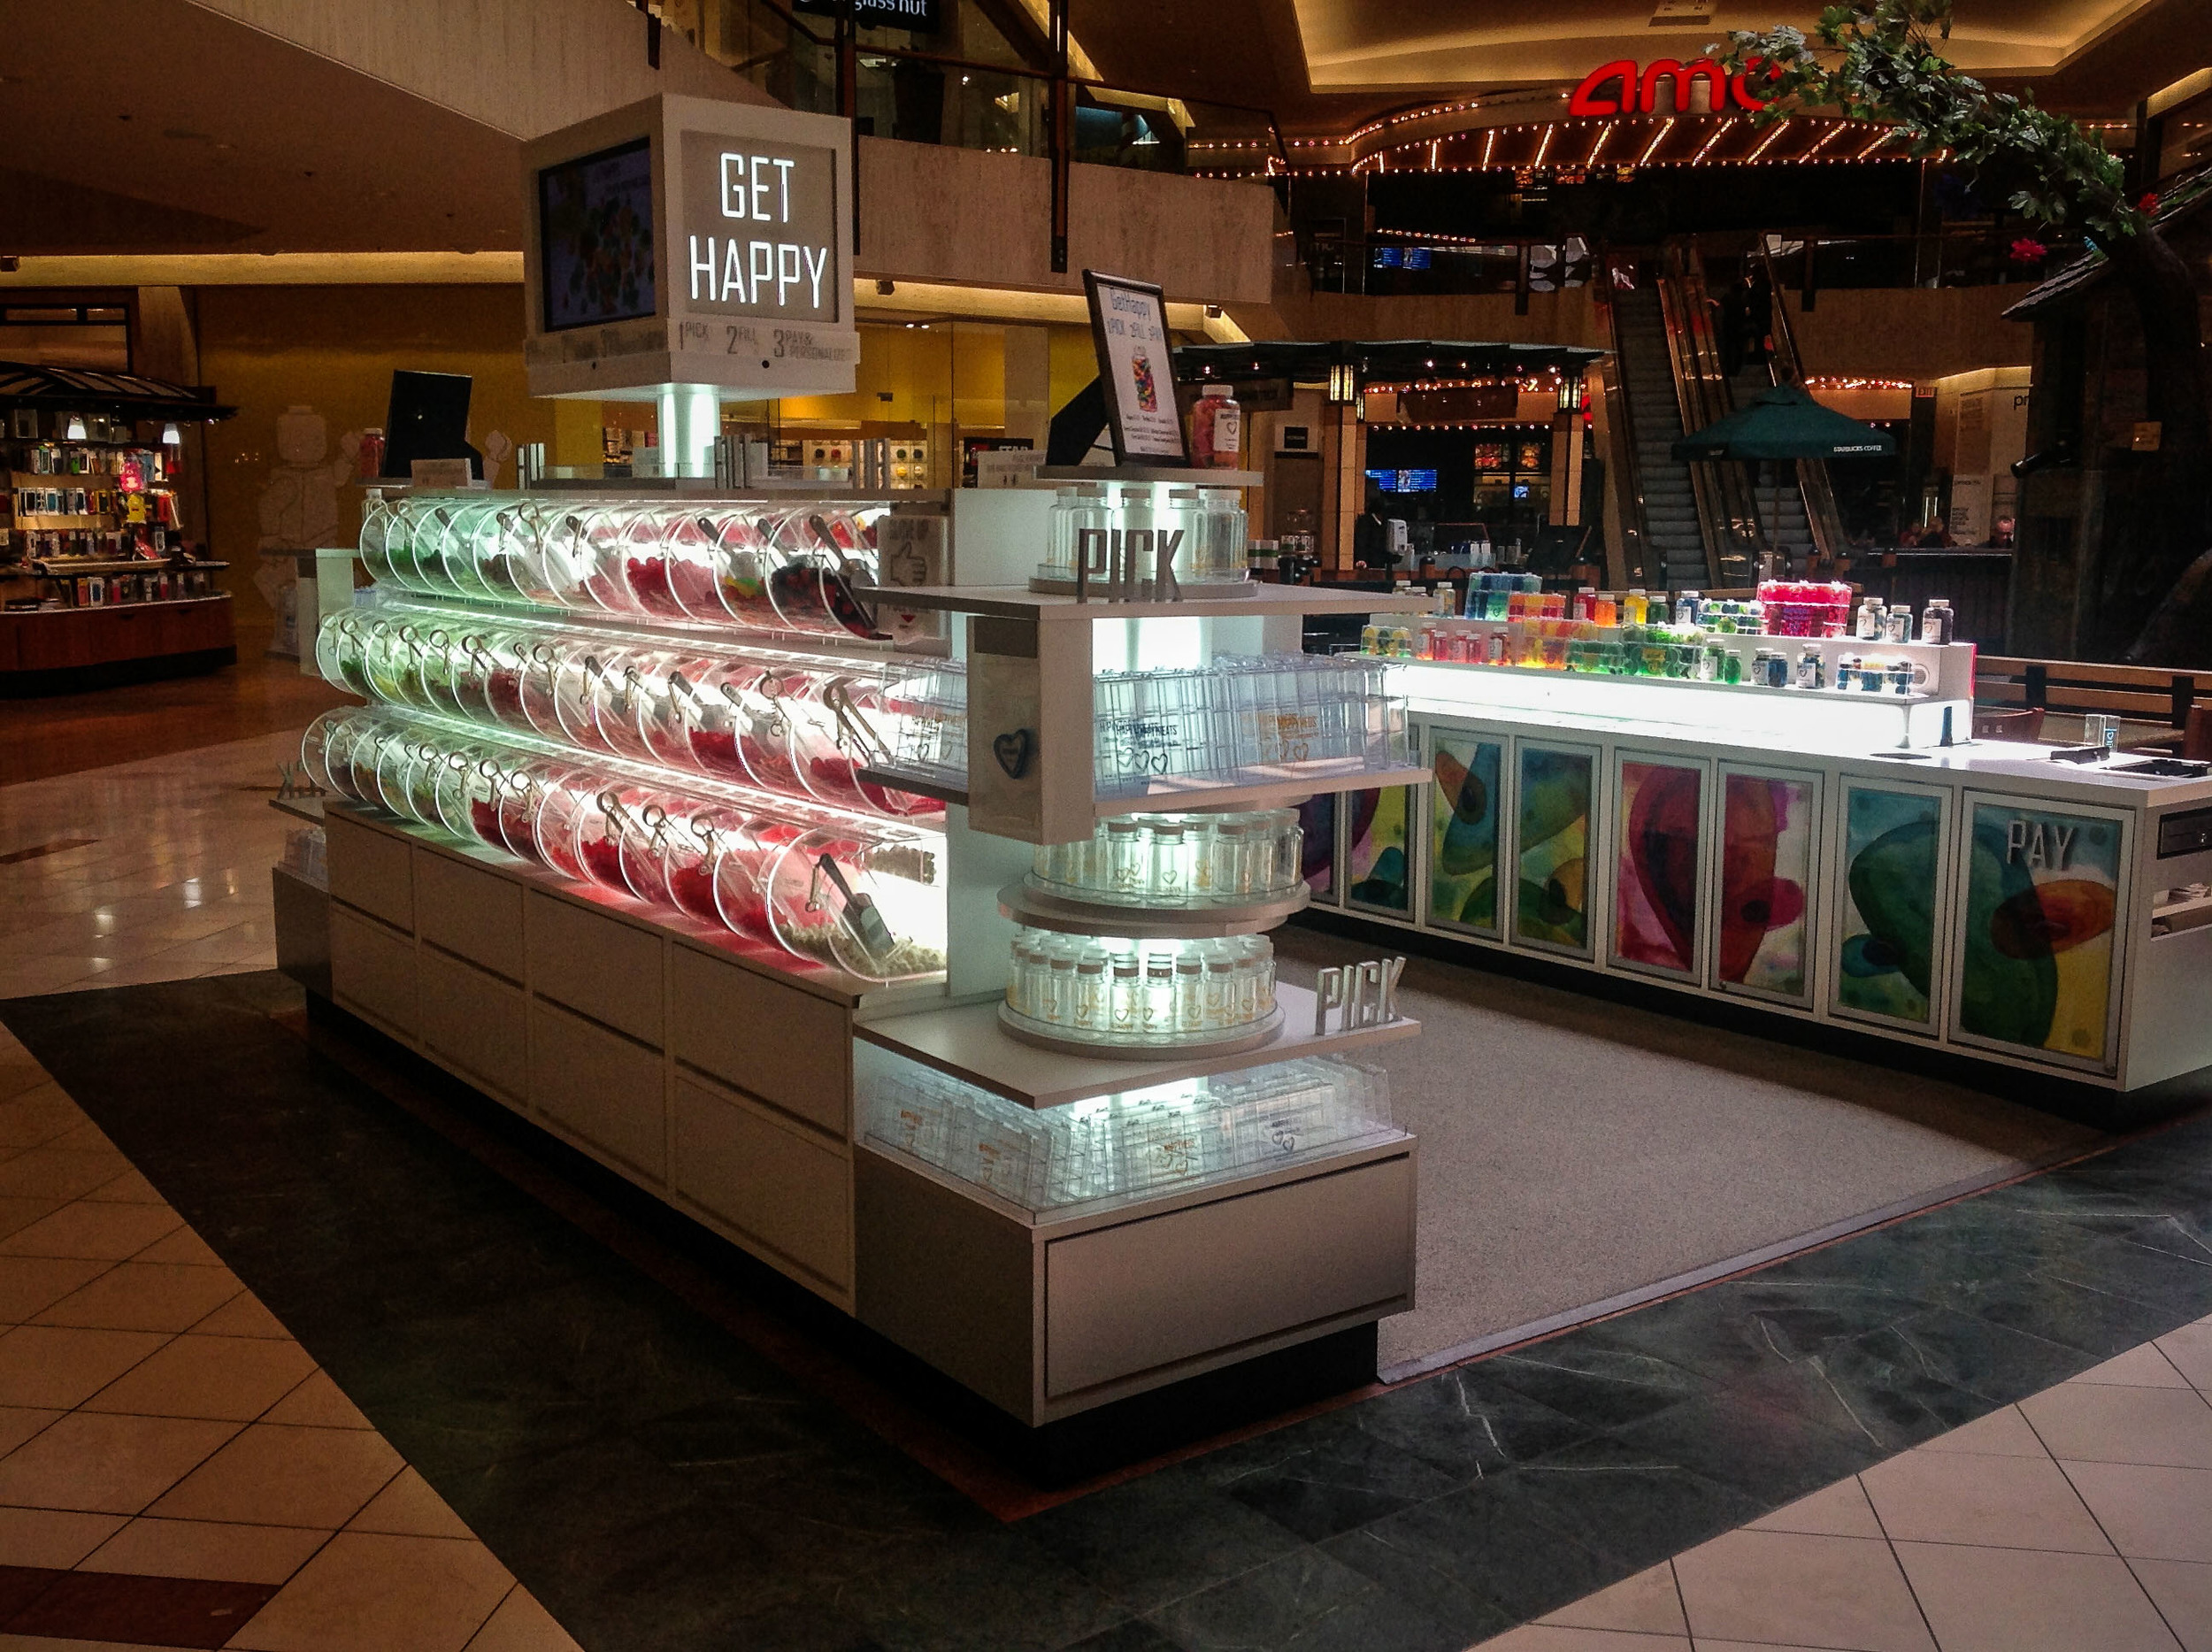 gethappy_kiosks-10.jpg